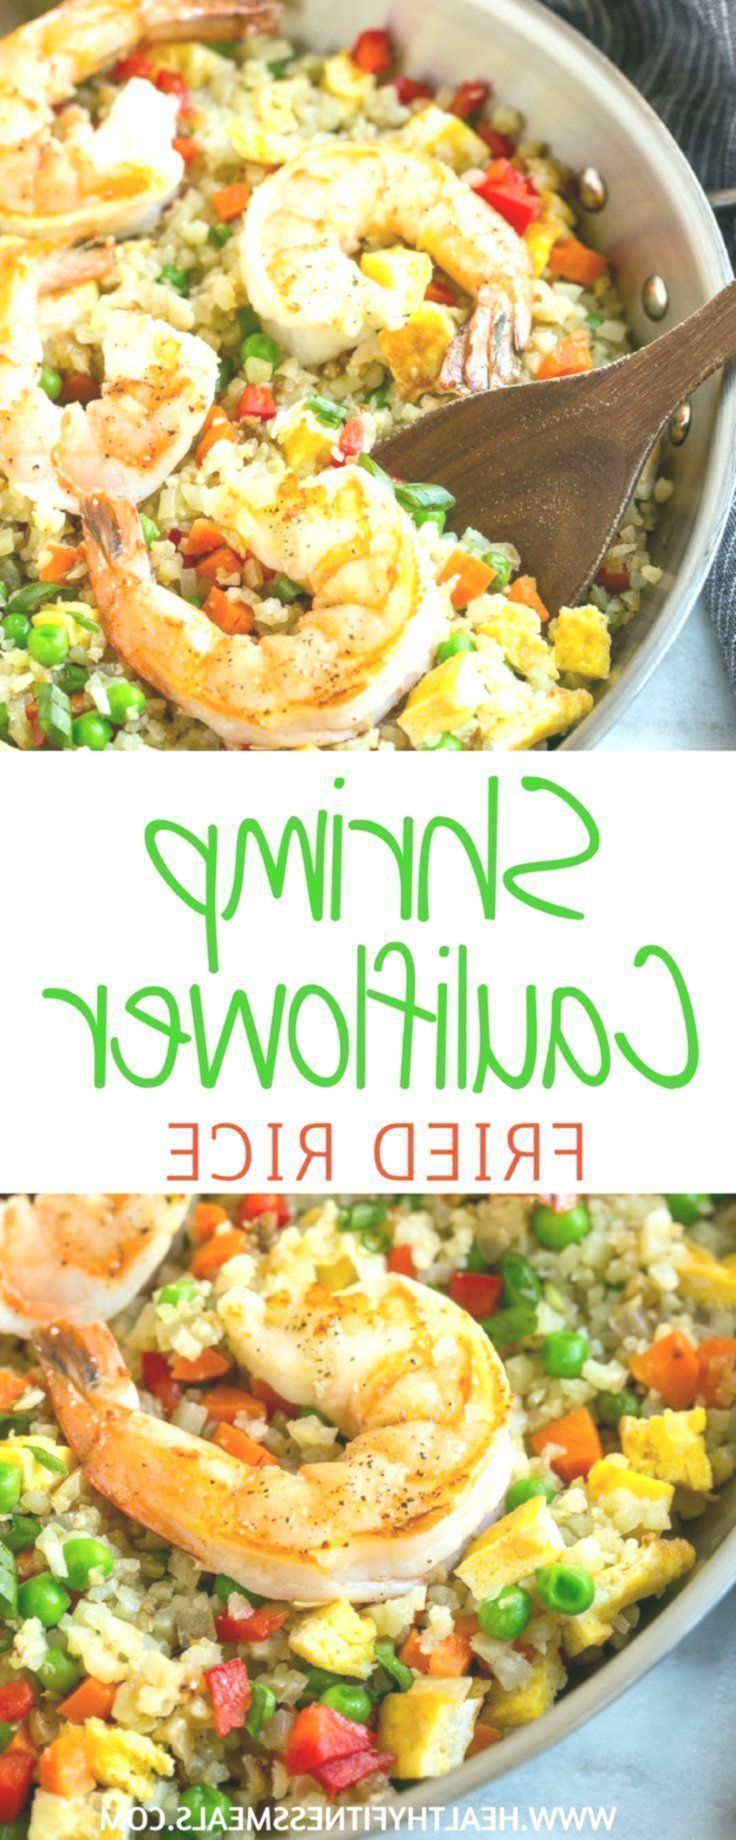 Shrimp Cauliflower Fried Rice | Low Carb | Cauliflower Fried Rice Recipes | Seaf... - #Carb #Cauliflower #Fried #Recipes #Rice #Seaf #Shrimp #cauliflowerfriedrice Shrimp Cauliflower Fried Rice | Low Carb | Cauliflower Fried Rice Recipes | Seaf... - #Carb #Cauliflower #Fried #Recipes #Rice #Seaf #Shrimp #cauliflowerfriedrice Shrimp Cauliflower Fried Rice | Low Carb | Cauliflower Fried Rice Recipes | Seaf... - #Carb #Cauliflower #Fried #Recipes #Rice #Seaf #Shrimp #cauliflowerfriedrice Shrimp Caul #cauliflowerfriedrice